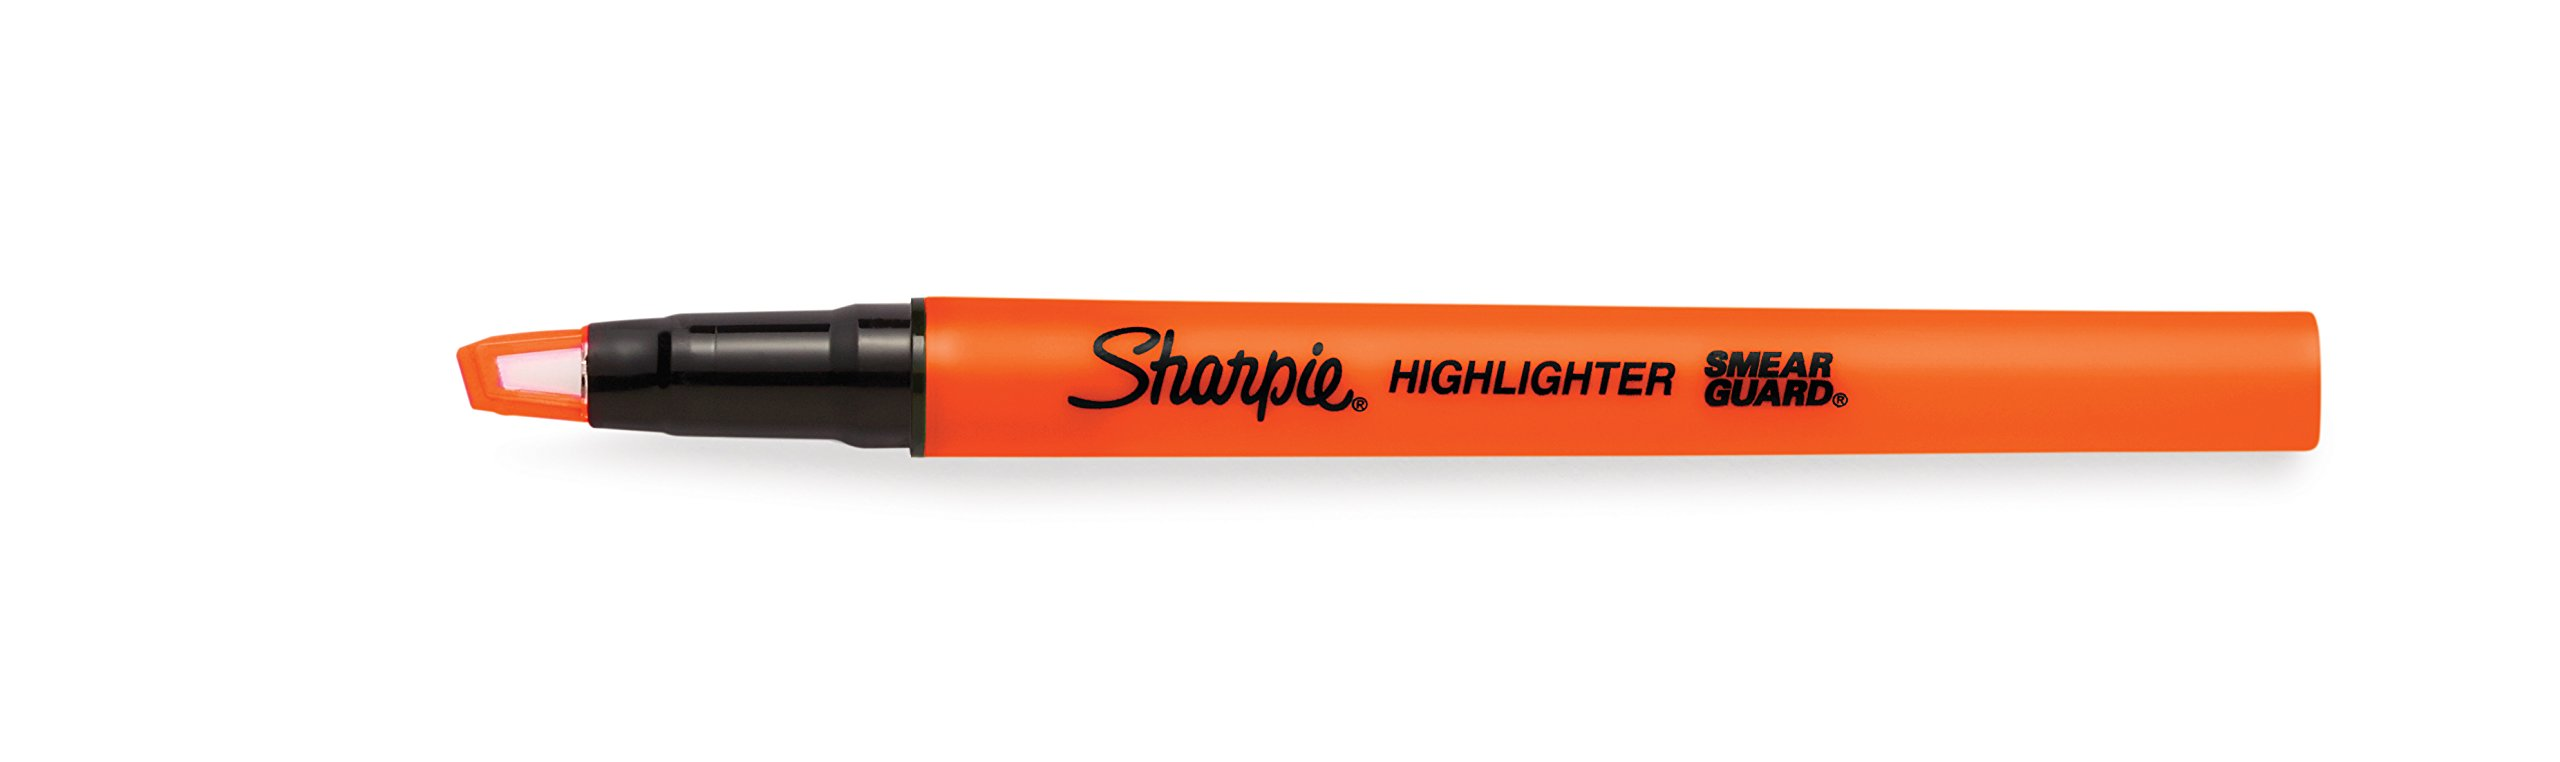 Sharpie Clear View Highlighter Stick, Assorted, 8 Pack (1966798) by Sharpie (Image #13)